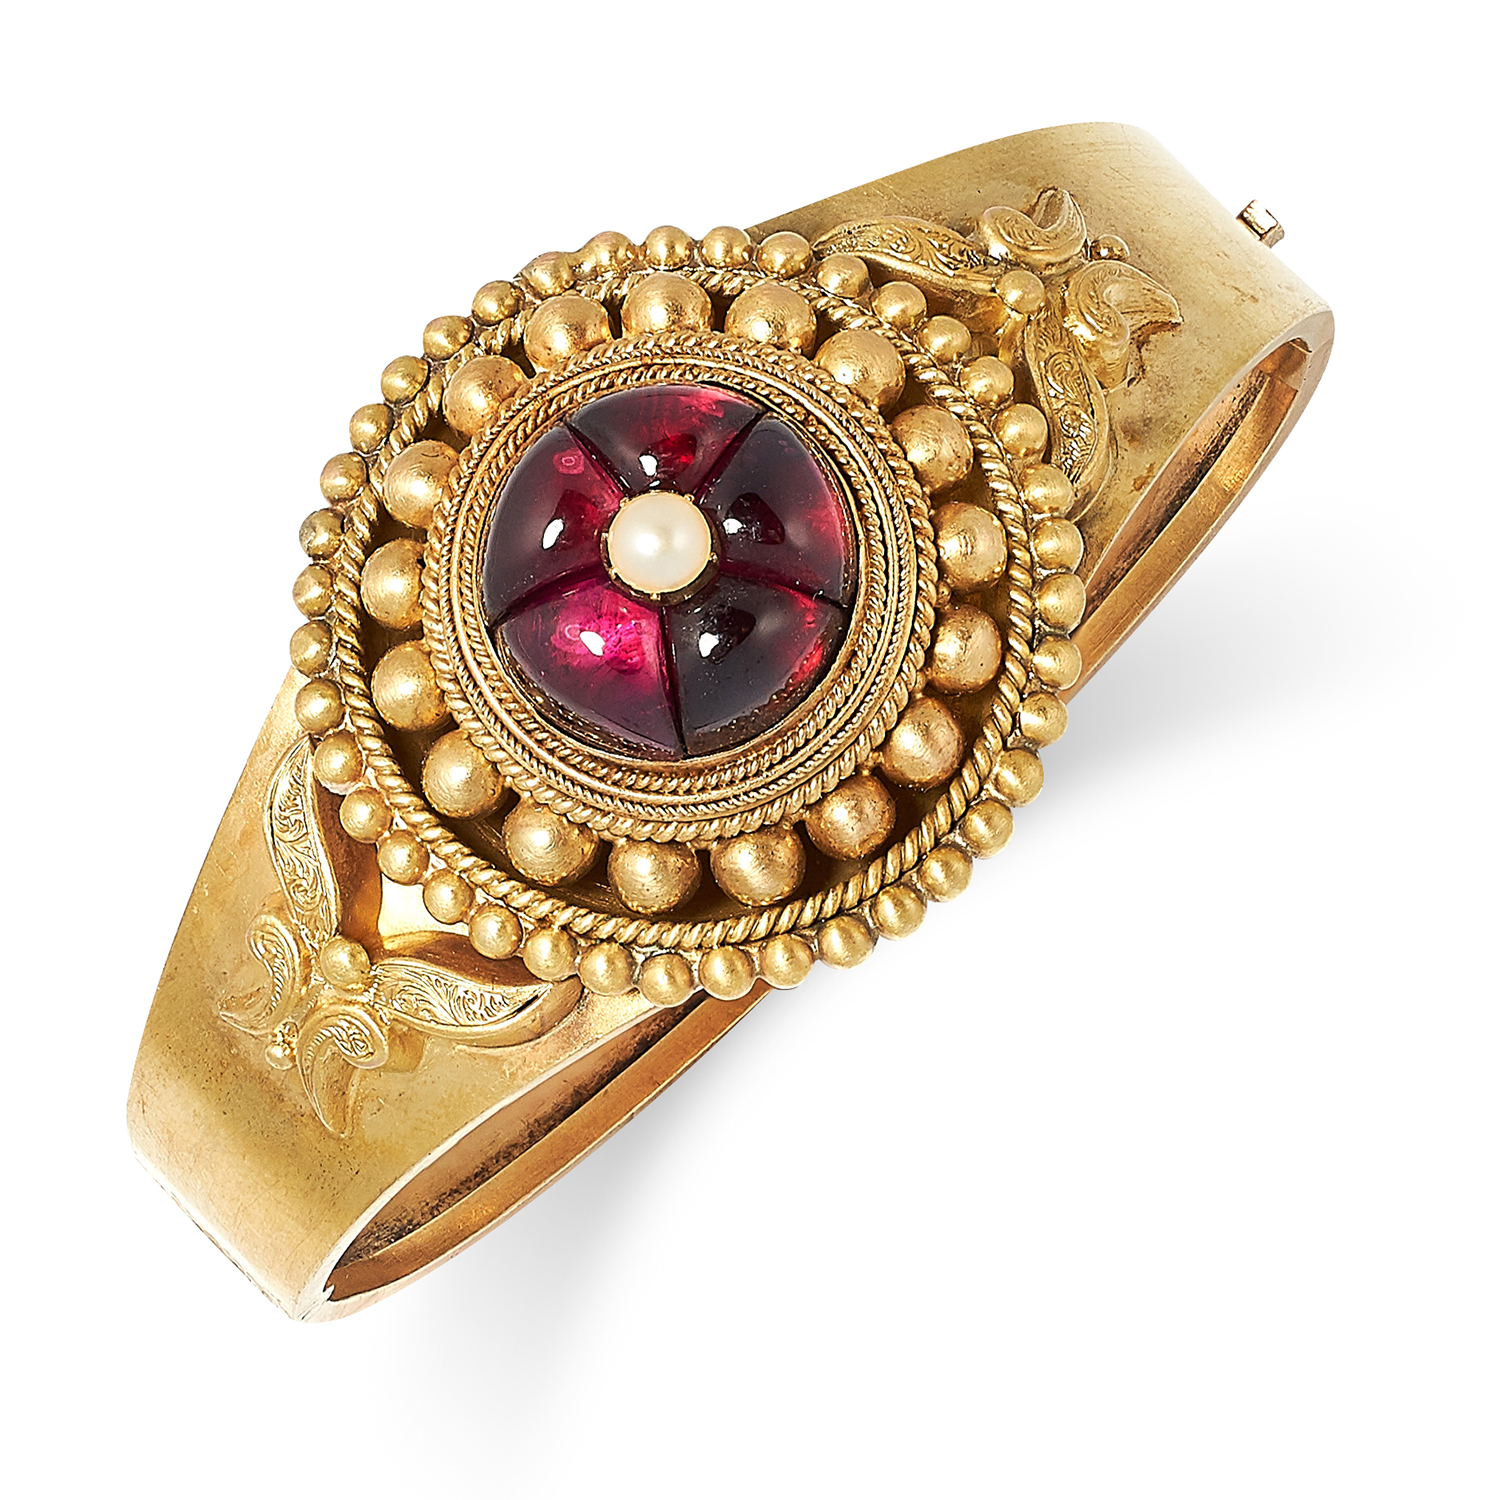 ANTIQUE VICTORIAN GARNET AND PEARL BANGLE set with cabochon garnet and a pearl, 5.5cm inner